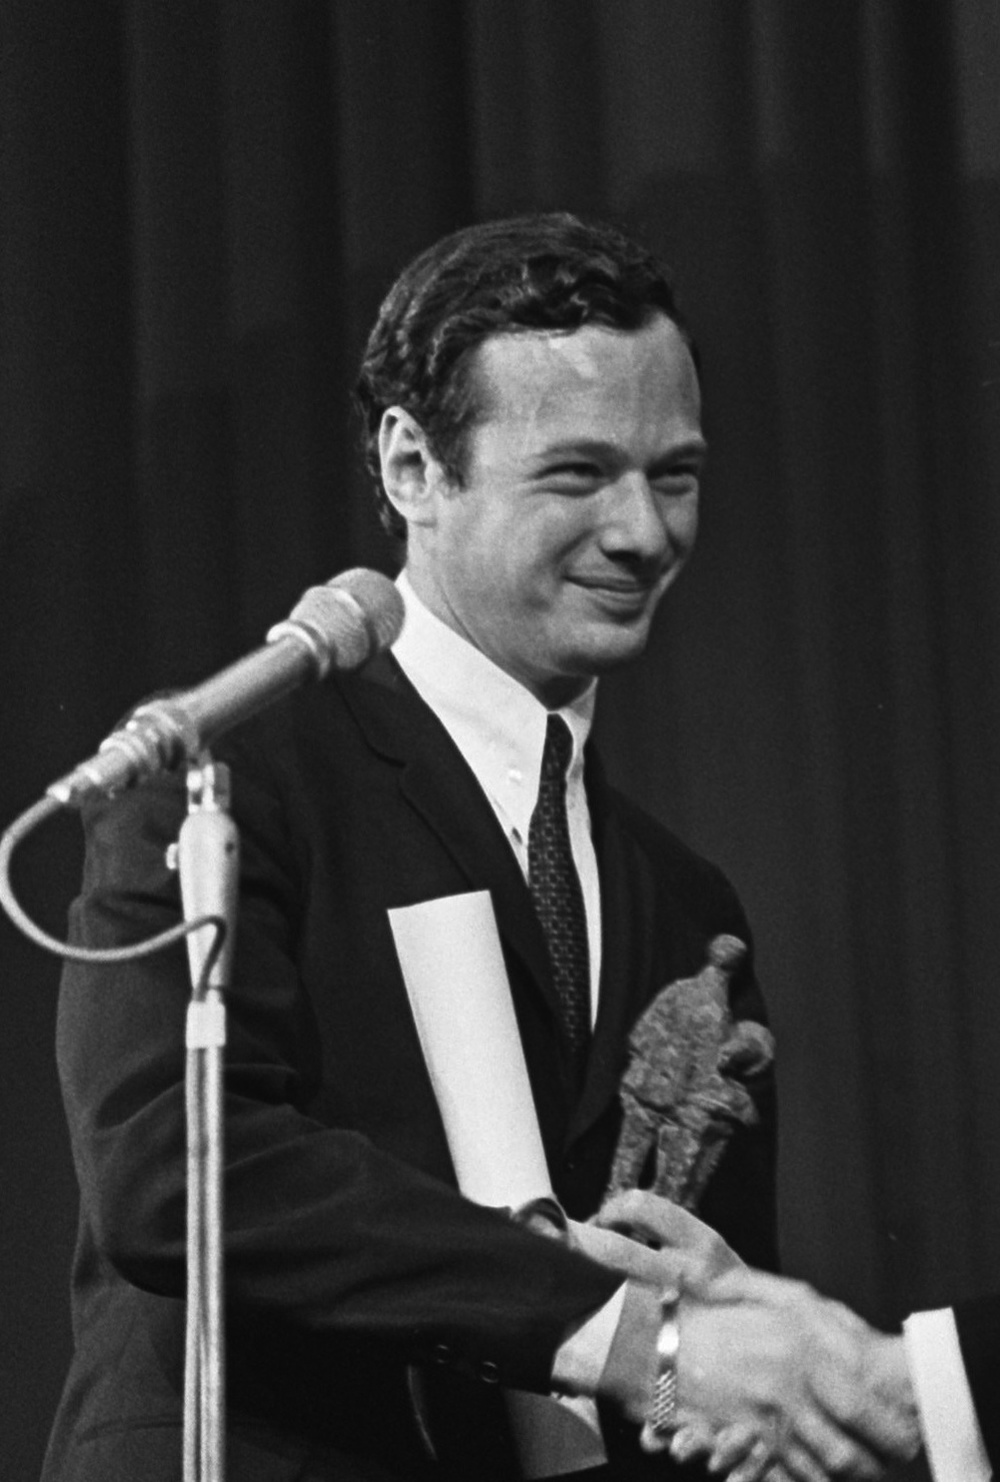 Click photo to download. Caption: Brian Epstein, manager of the Beatles, receives the Edison Award for the Beatles at the Grand Gala du Disque in 1965. Credit: Eric Koch/Anefo via Wikimedia Commons.